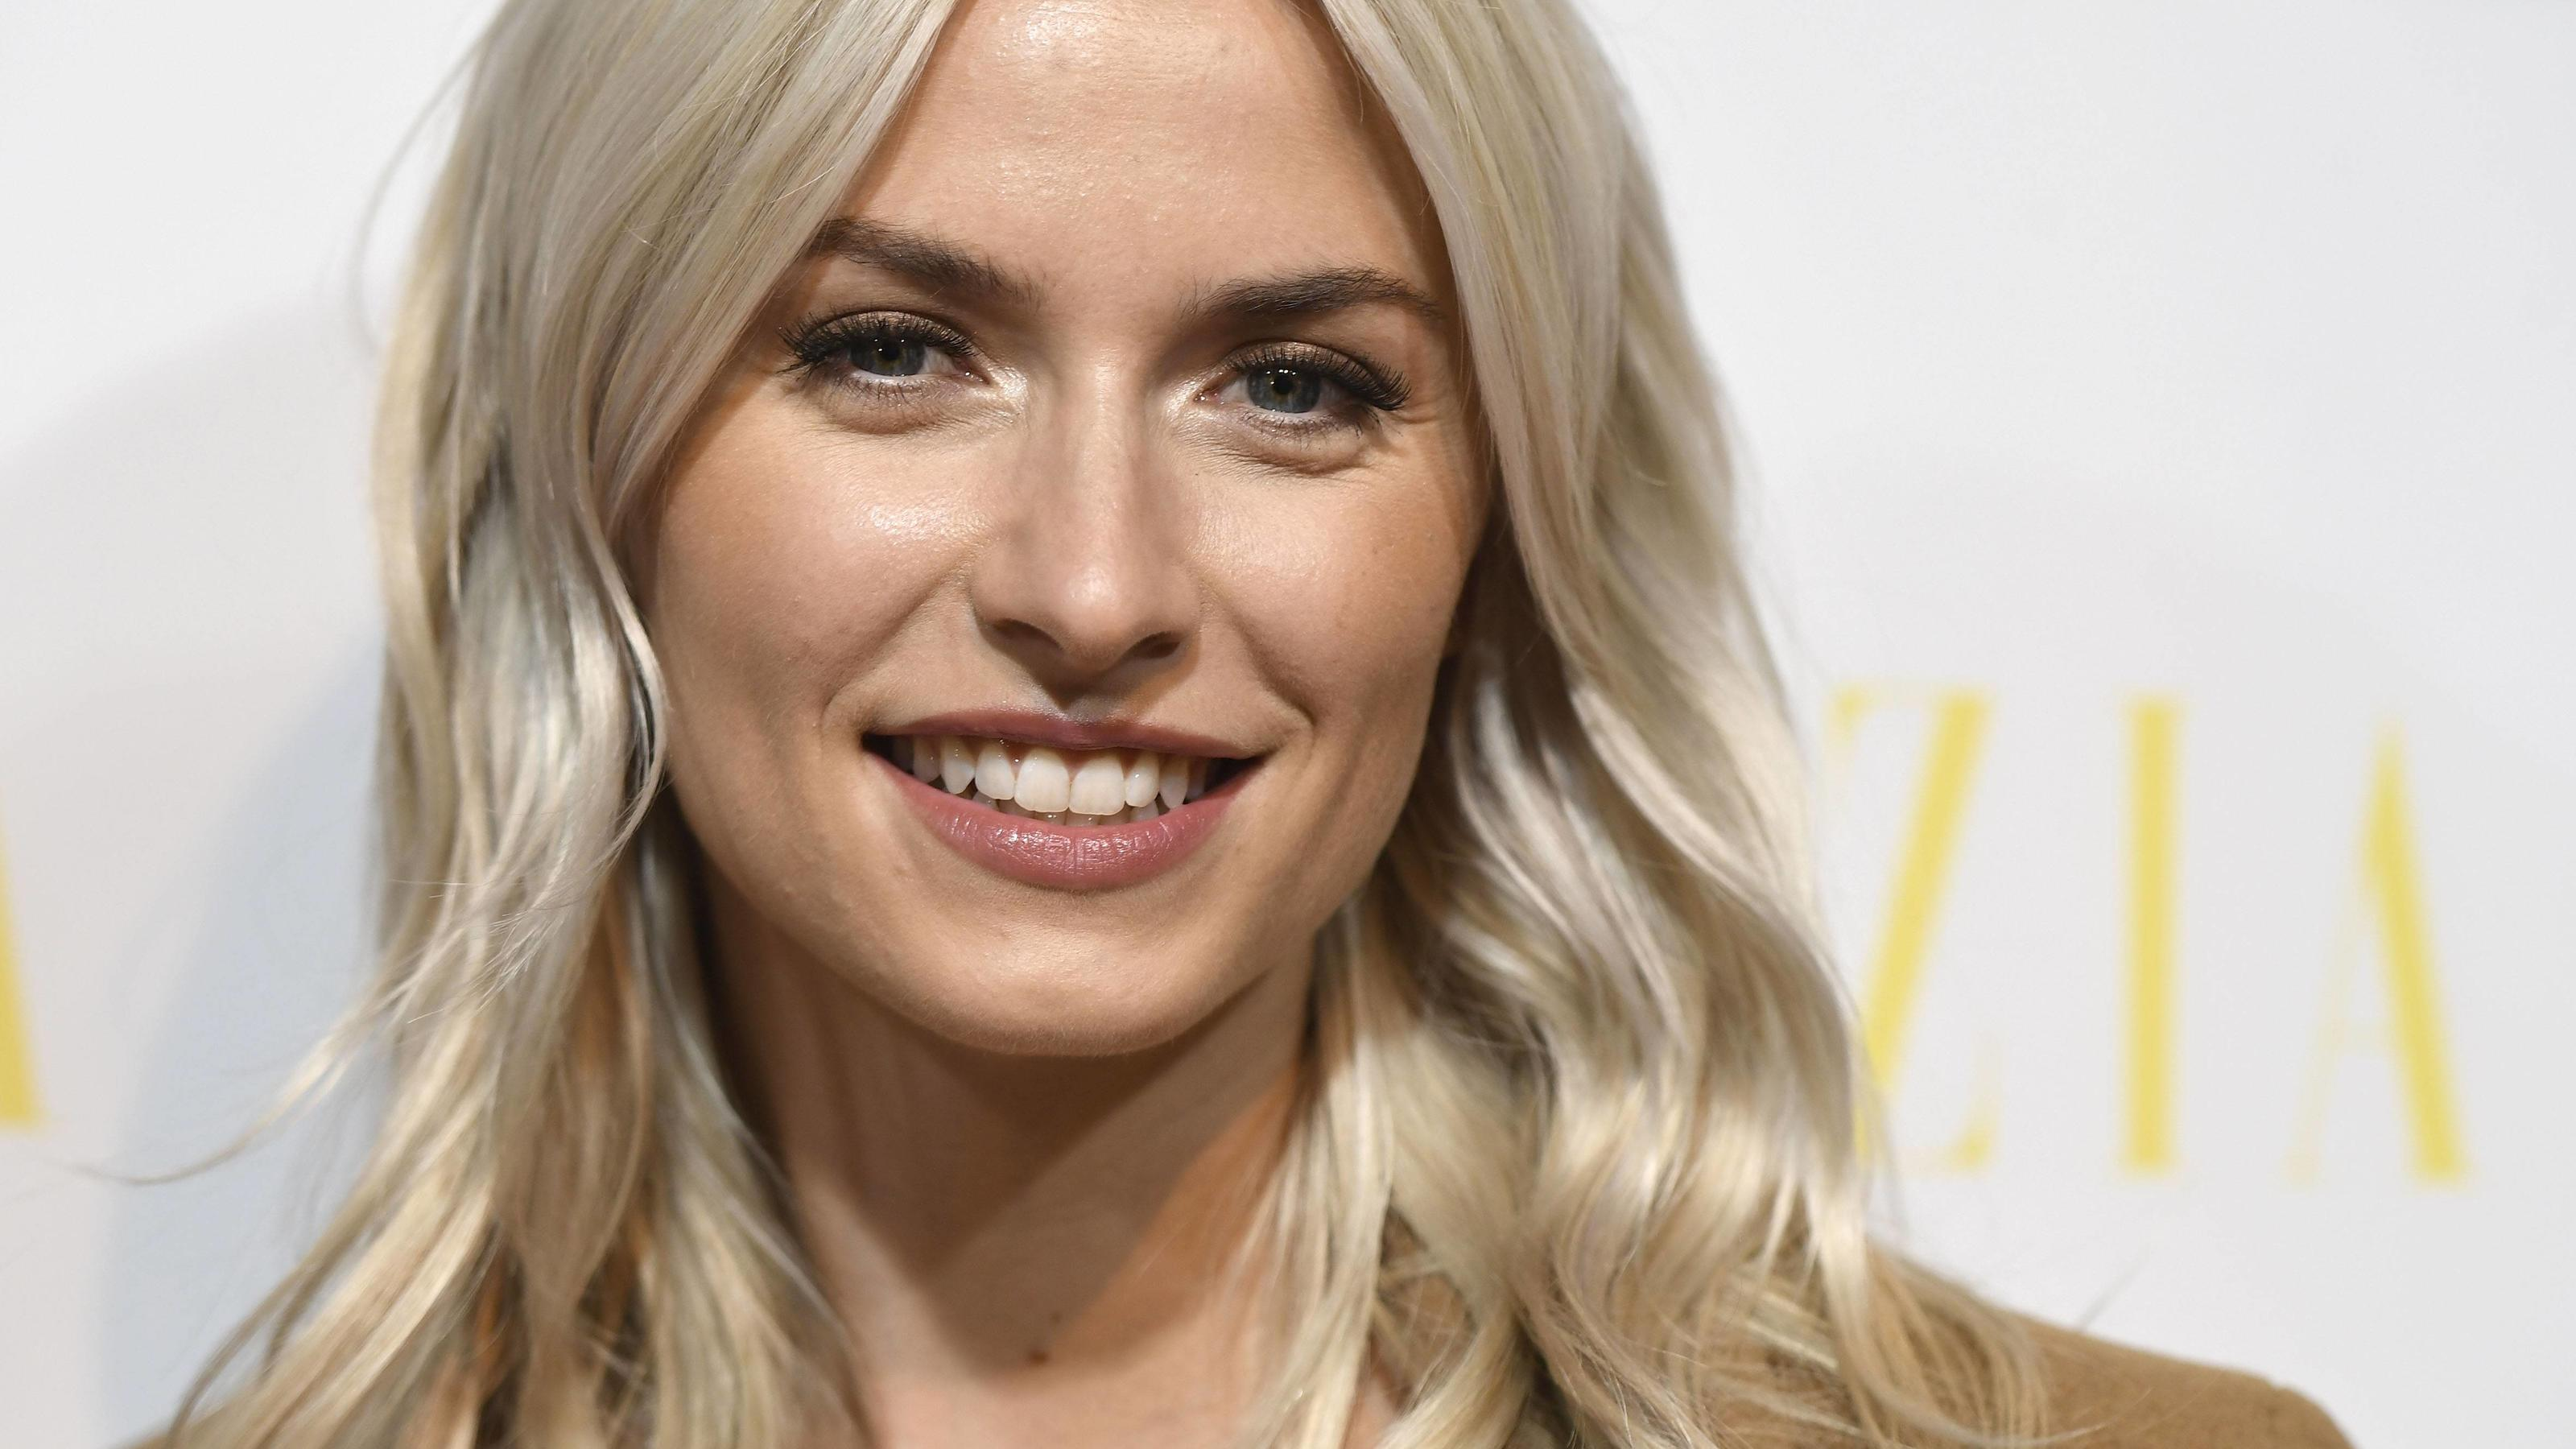 Lena Gercke beim Late-Night Shopping Event unter dem Motto Style Your Life im Esprit Store. Düsseldorf, 14.09.2018 *** Lena Gercke at the Late Night Shopping Event under the motto Style Your Life in the Esprit Store Düsseldorf 14 09 2018 Foto:xJ.xKri